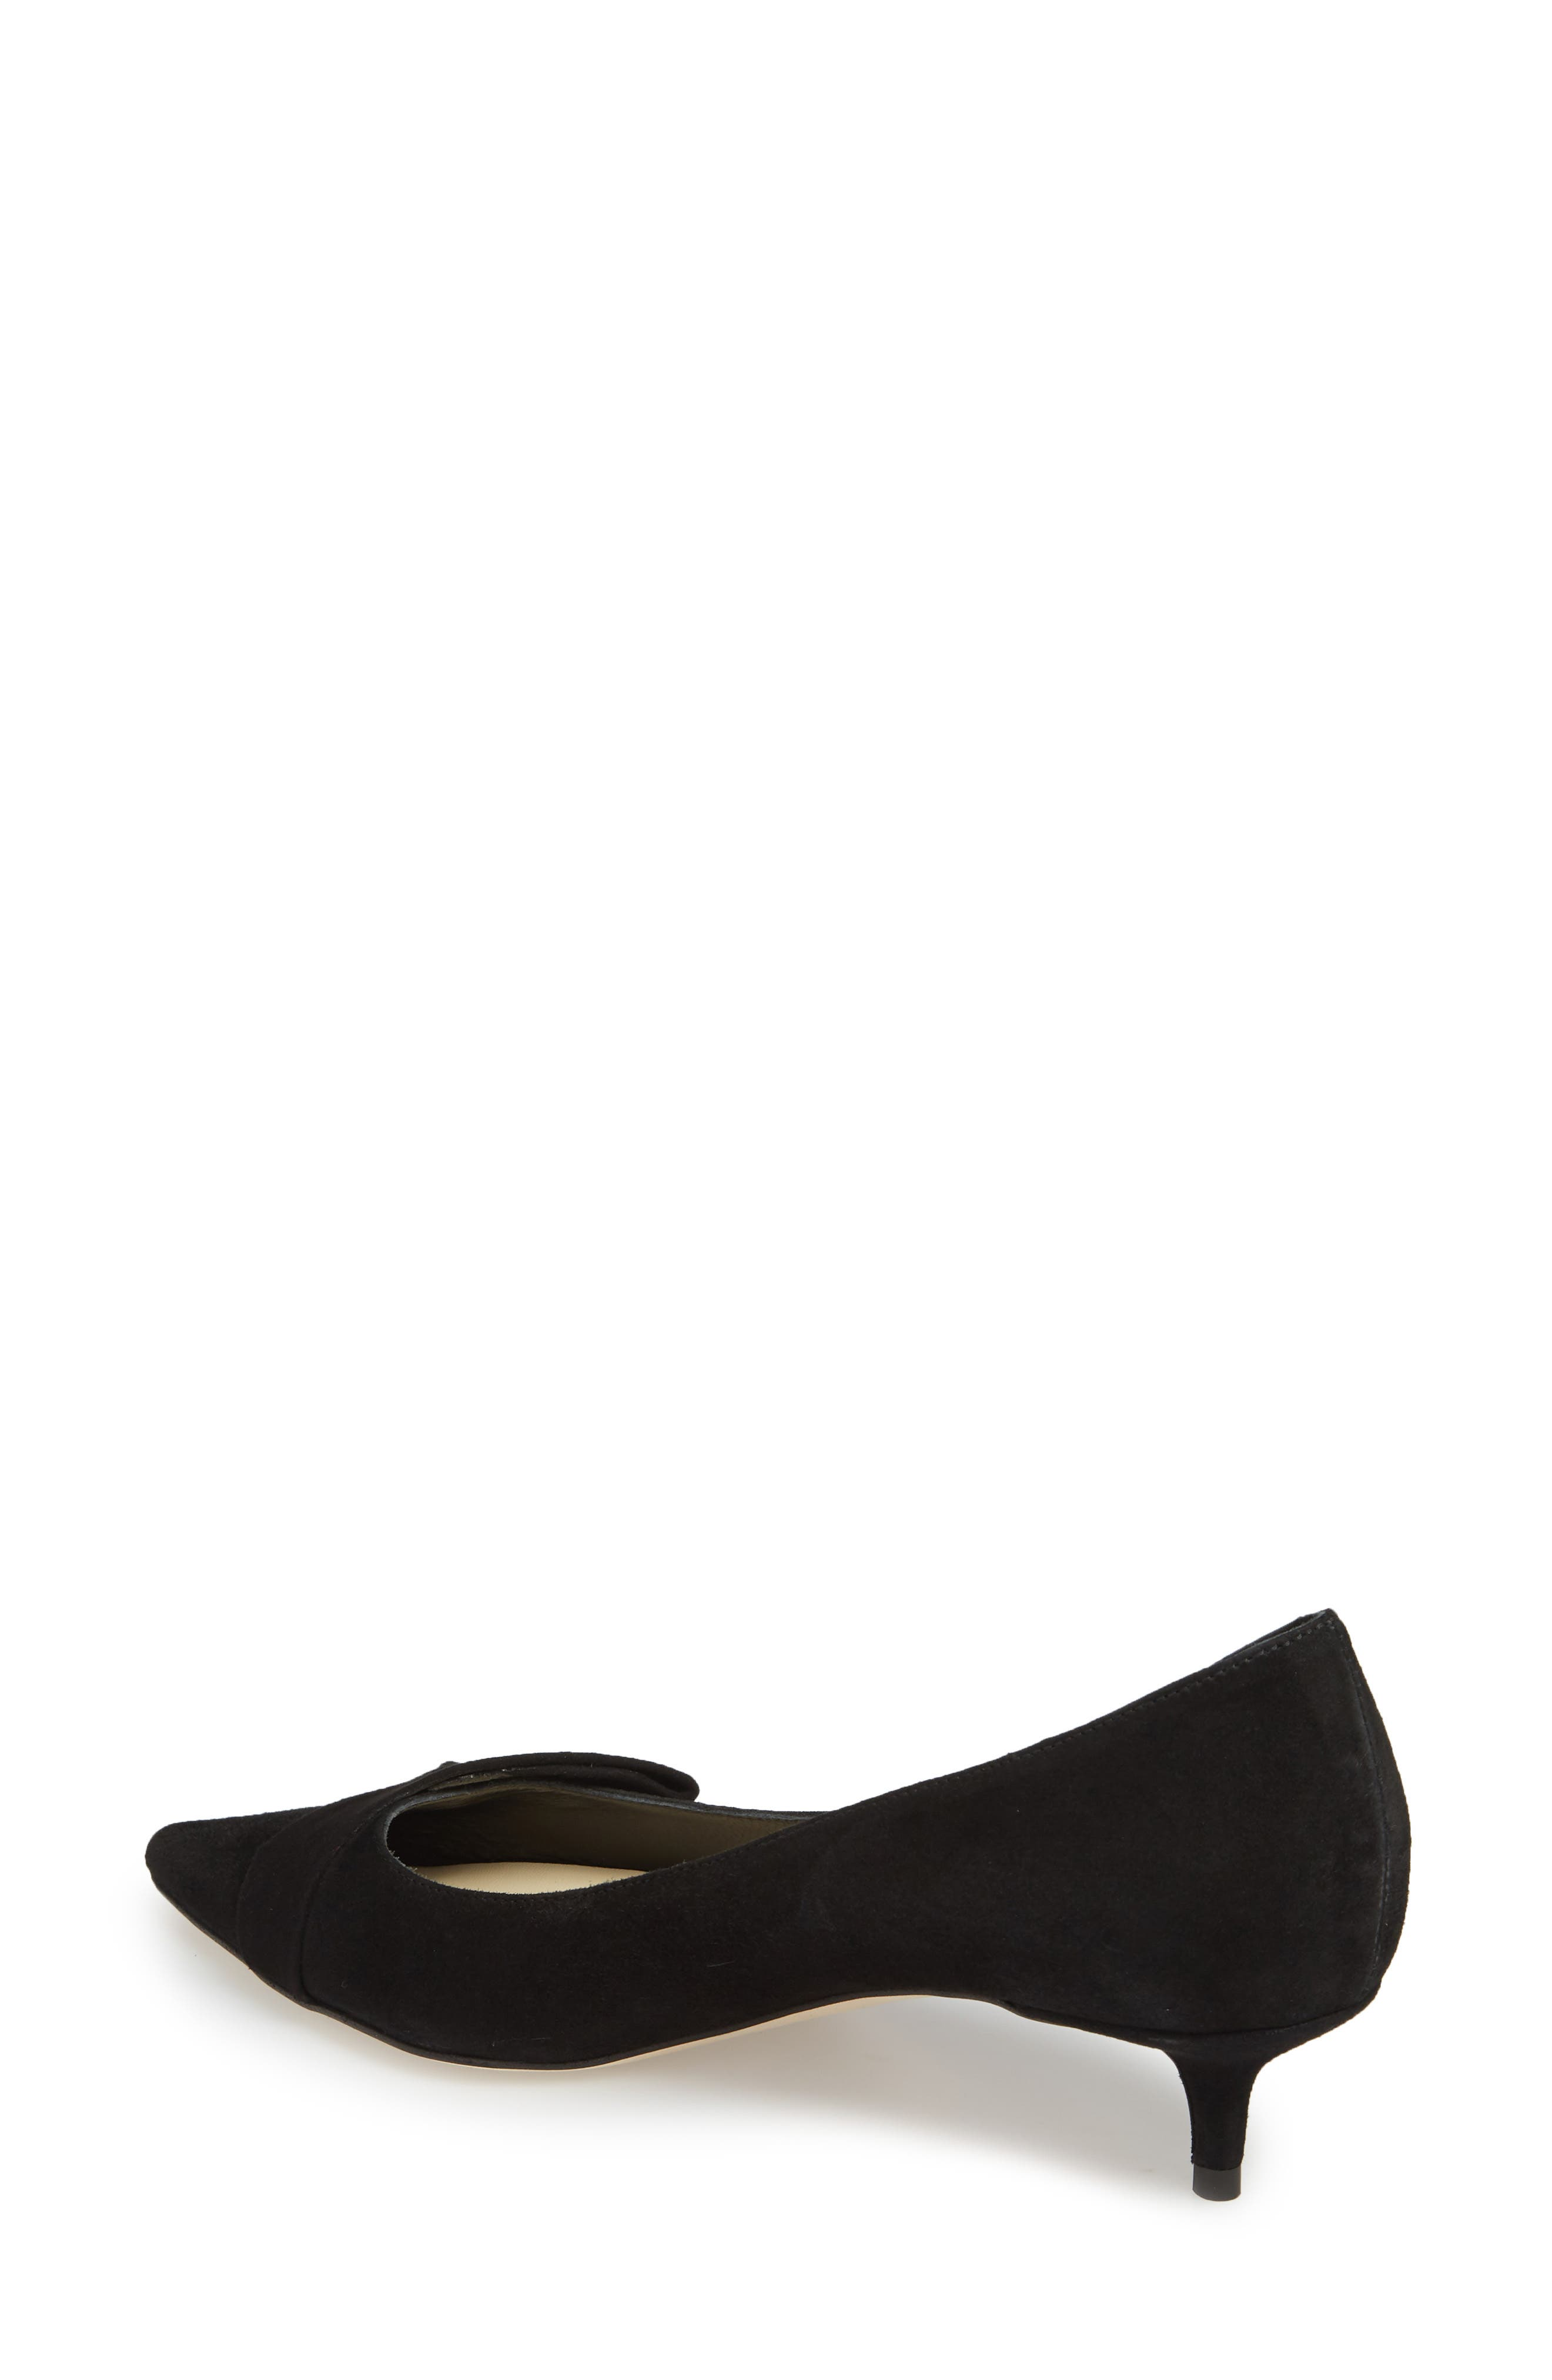 Butter Bliss Pointy Toe Pump,                             Alternate thumbnail 2, color,                             Black Suede